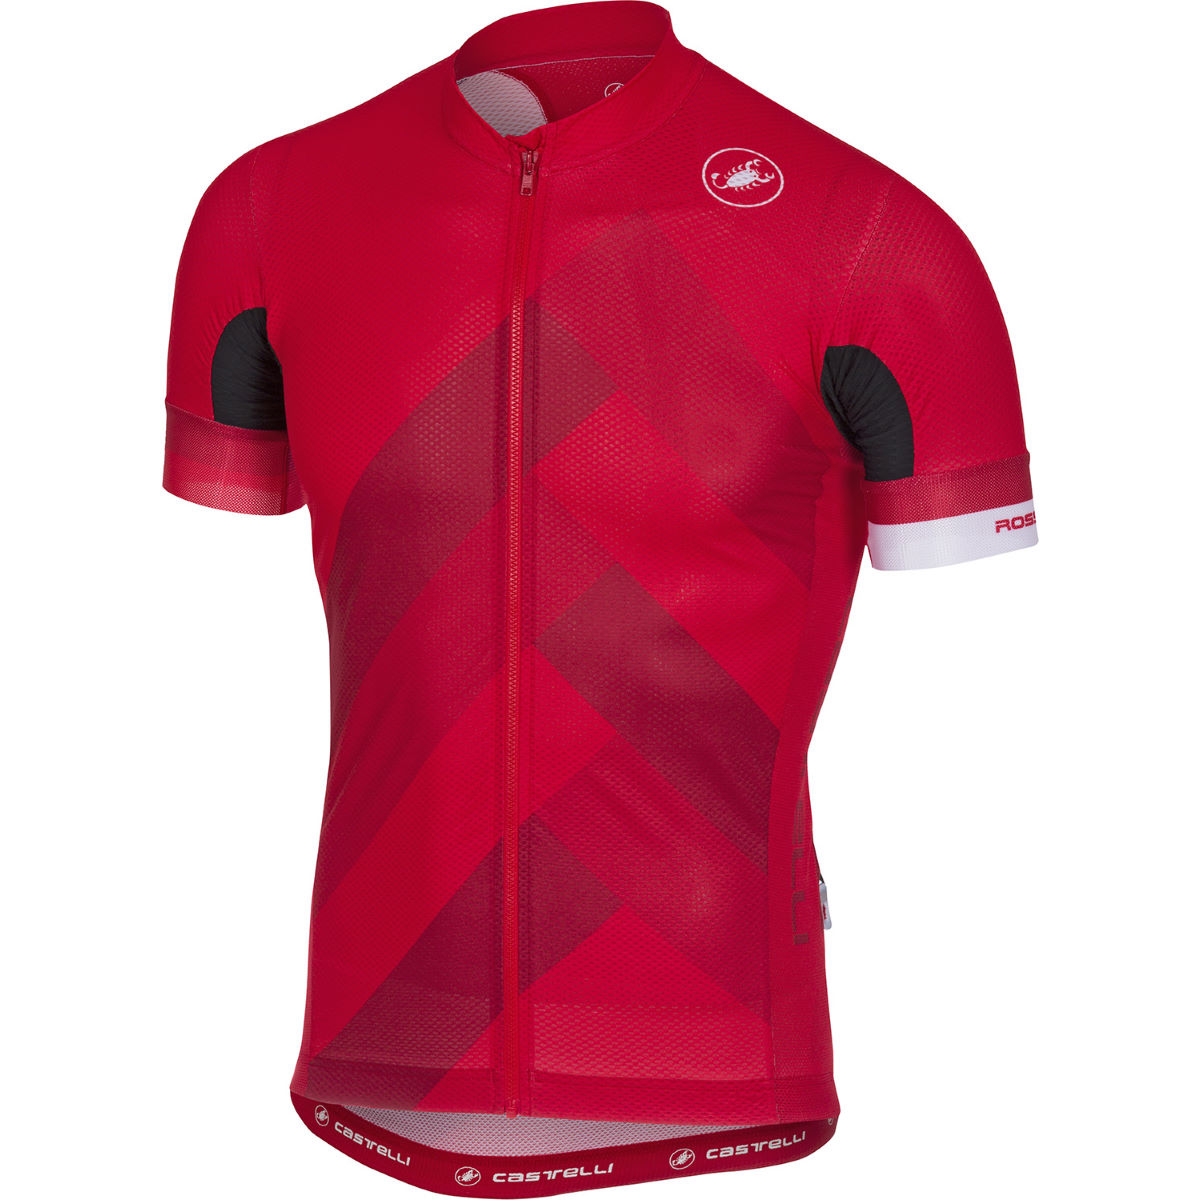 Maillot Castelli Free AR 4.1 - S Rouge